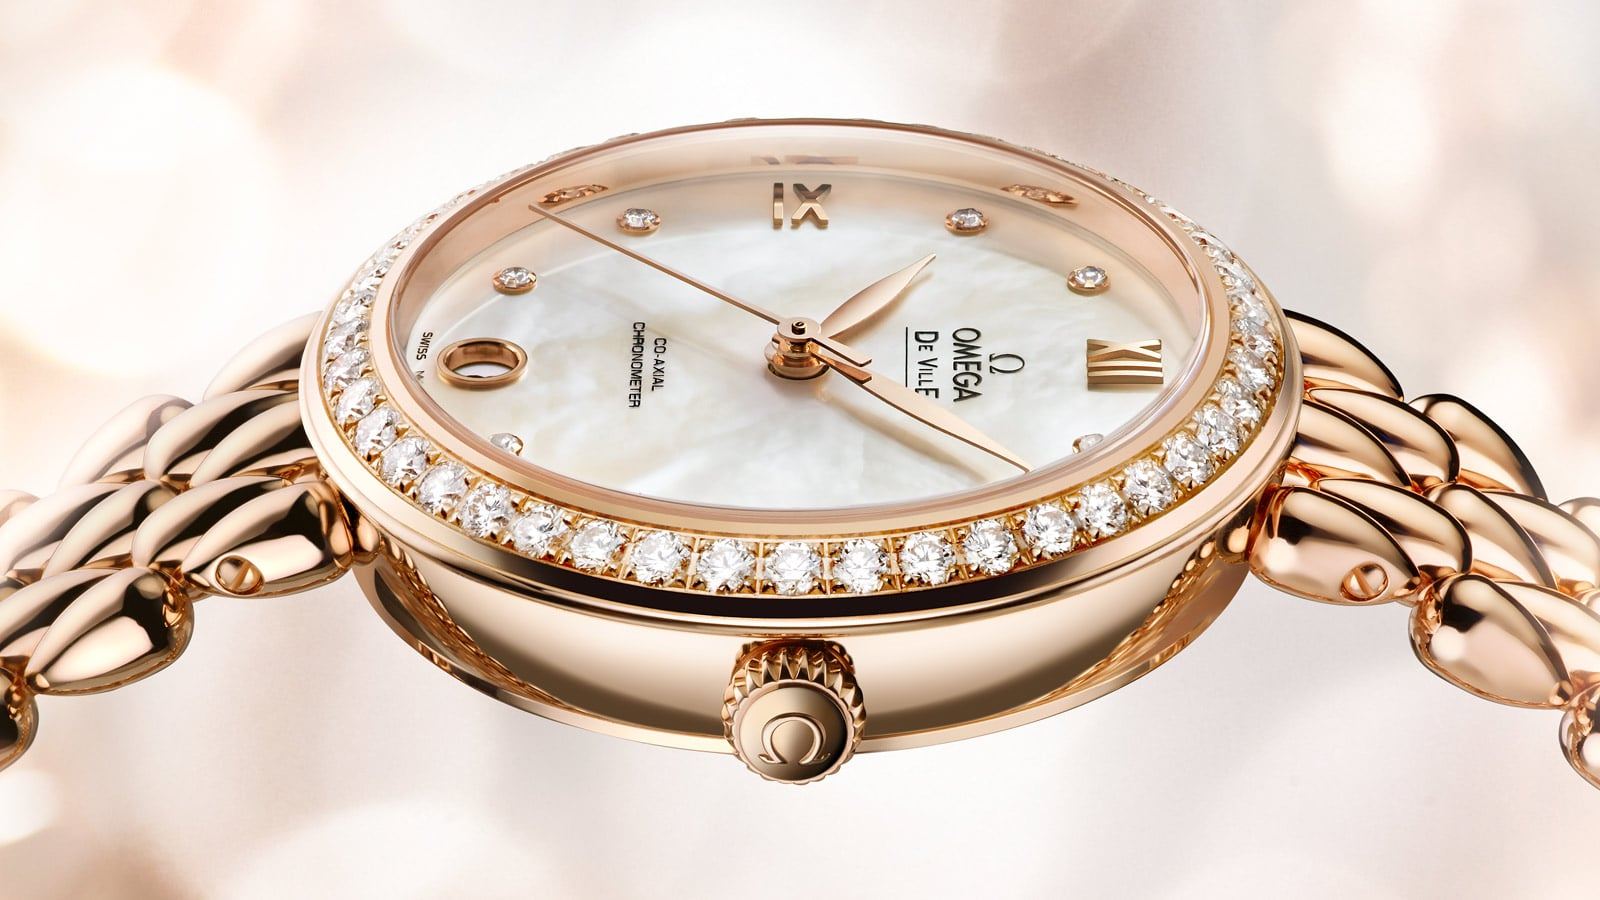 Side view of a Prestige Dewdrop watch with its diamond encrusted case and crown engraved with the Omega logo